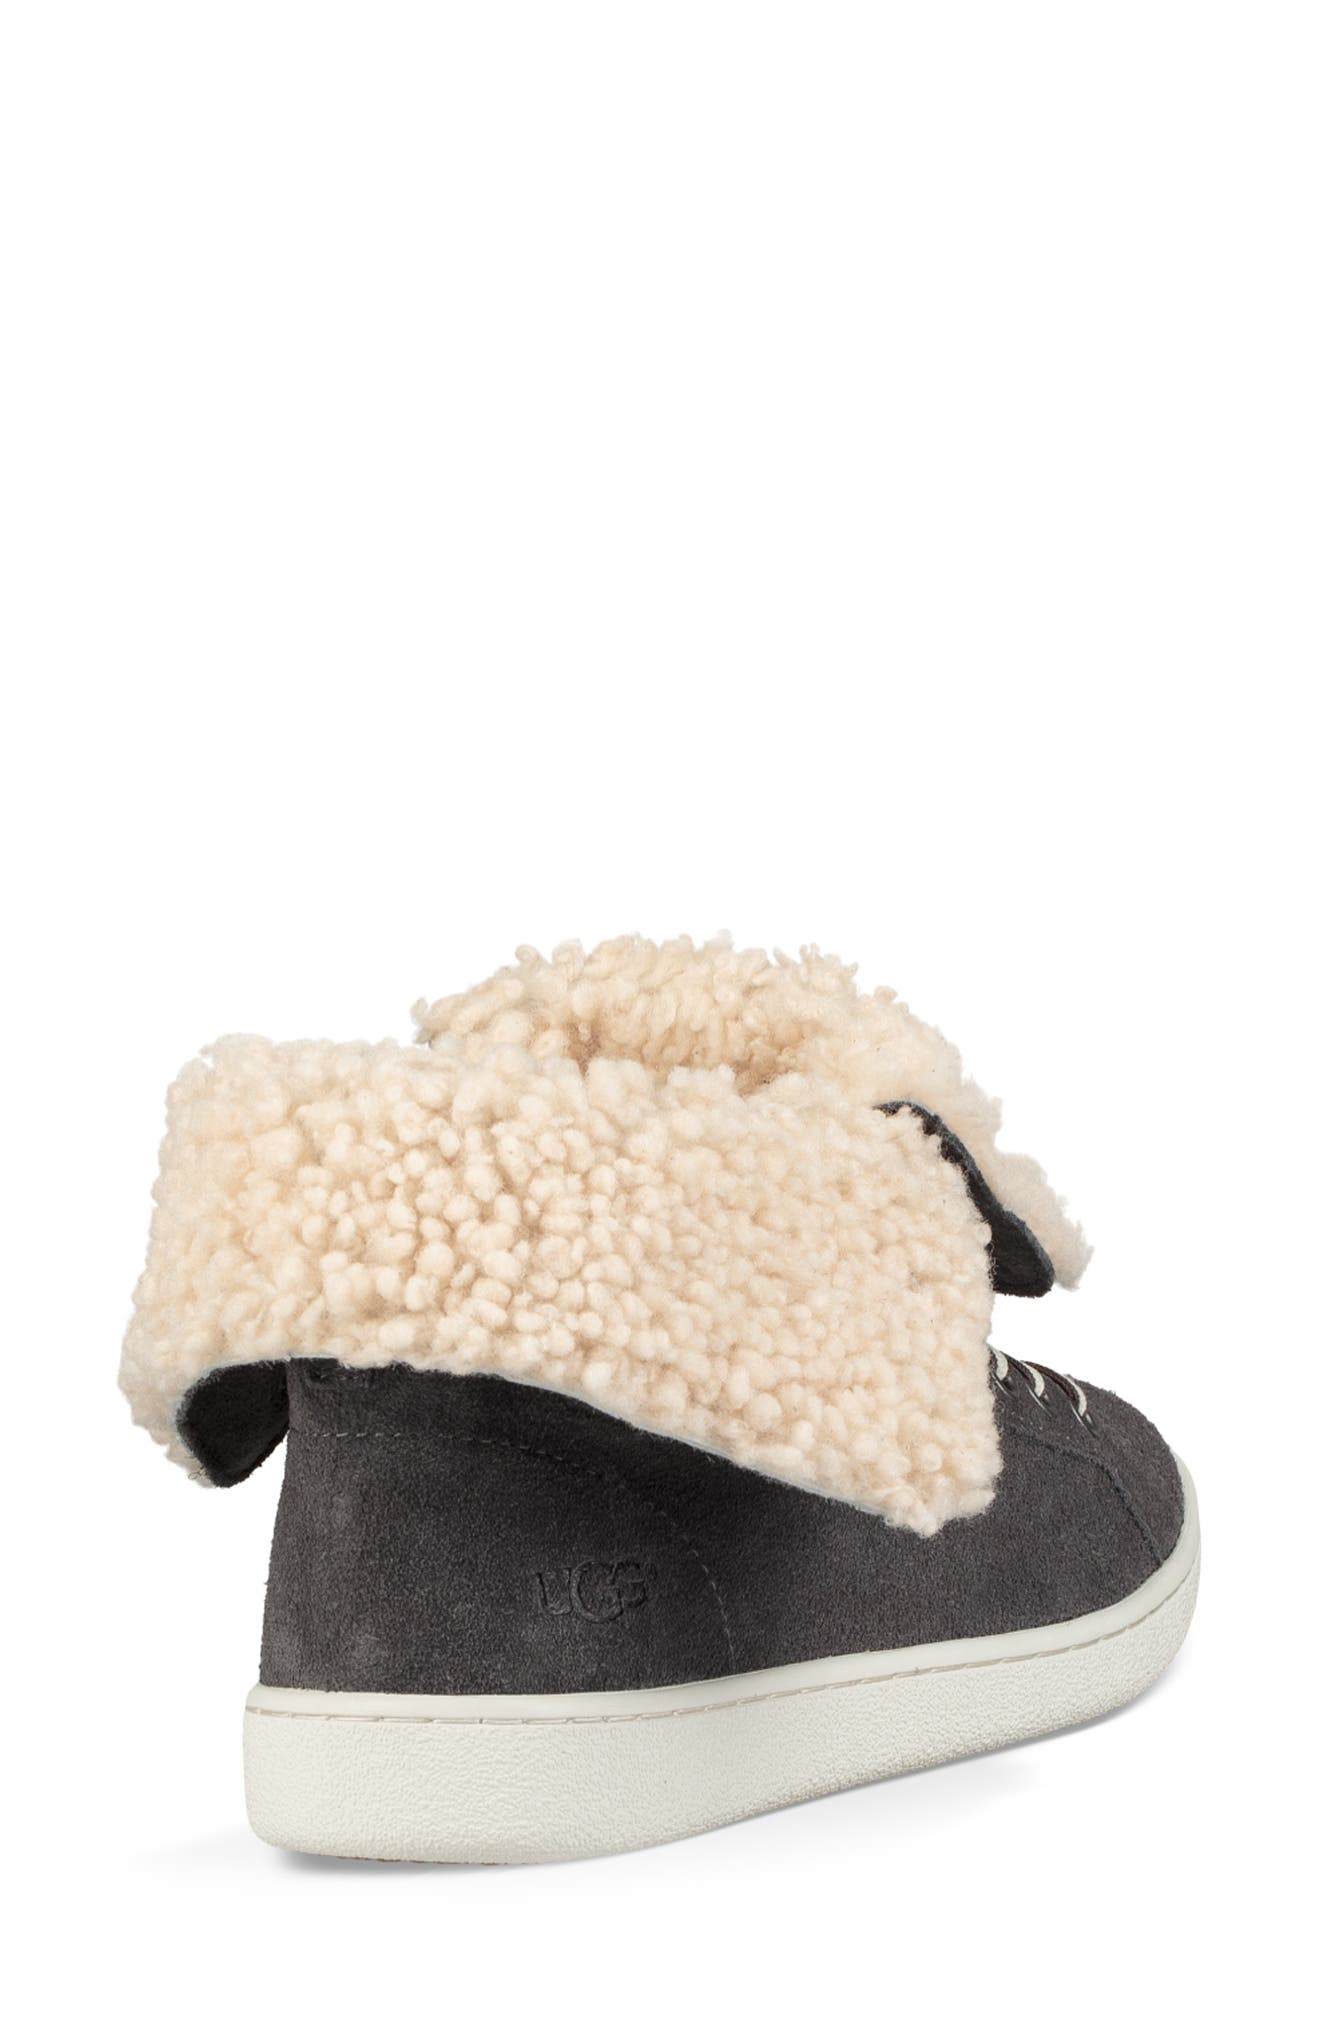 Starlyn Genuine Shearling Lined Boot,                             Alternate thumbnail 3, color,                             CHARCOAL